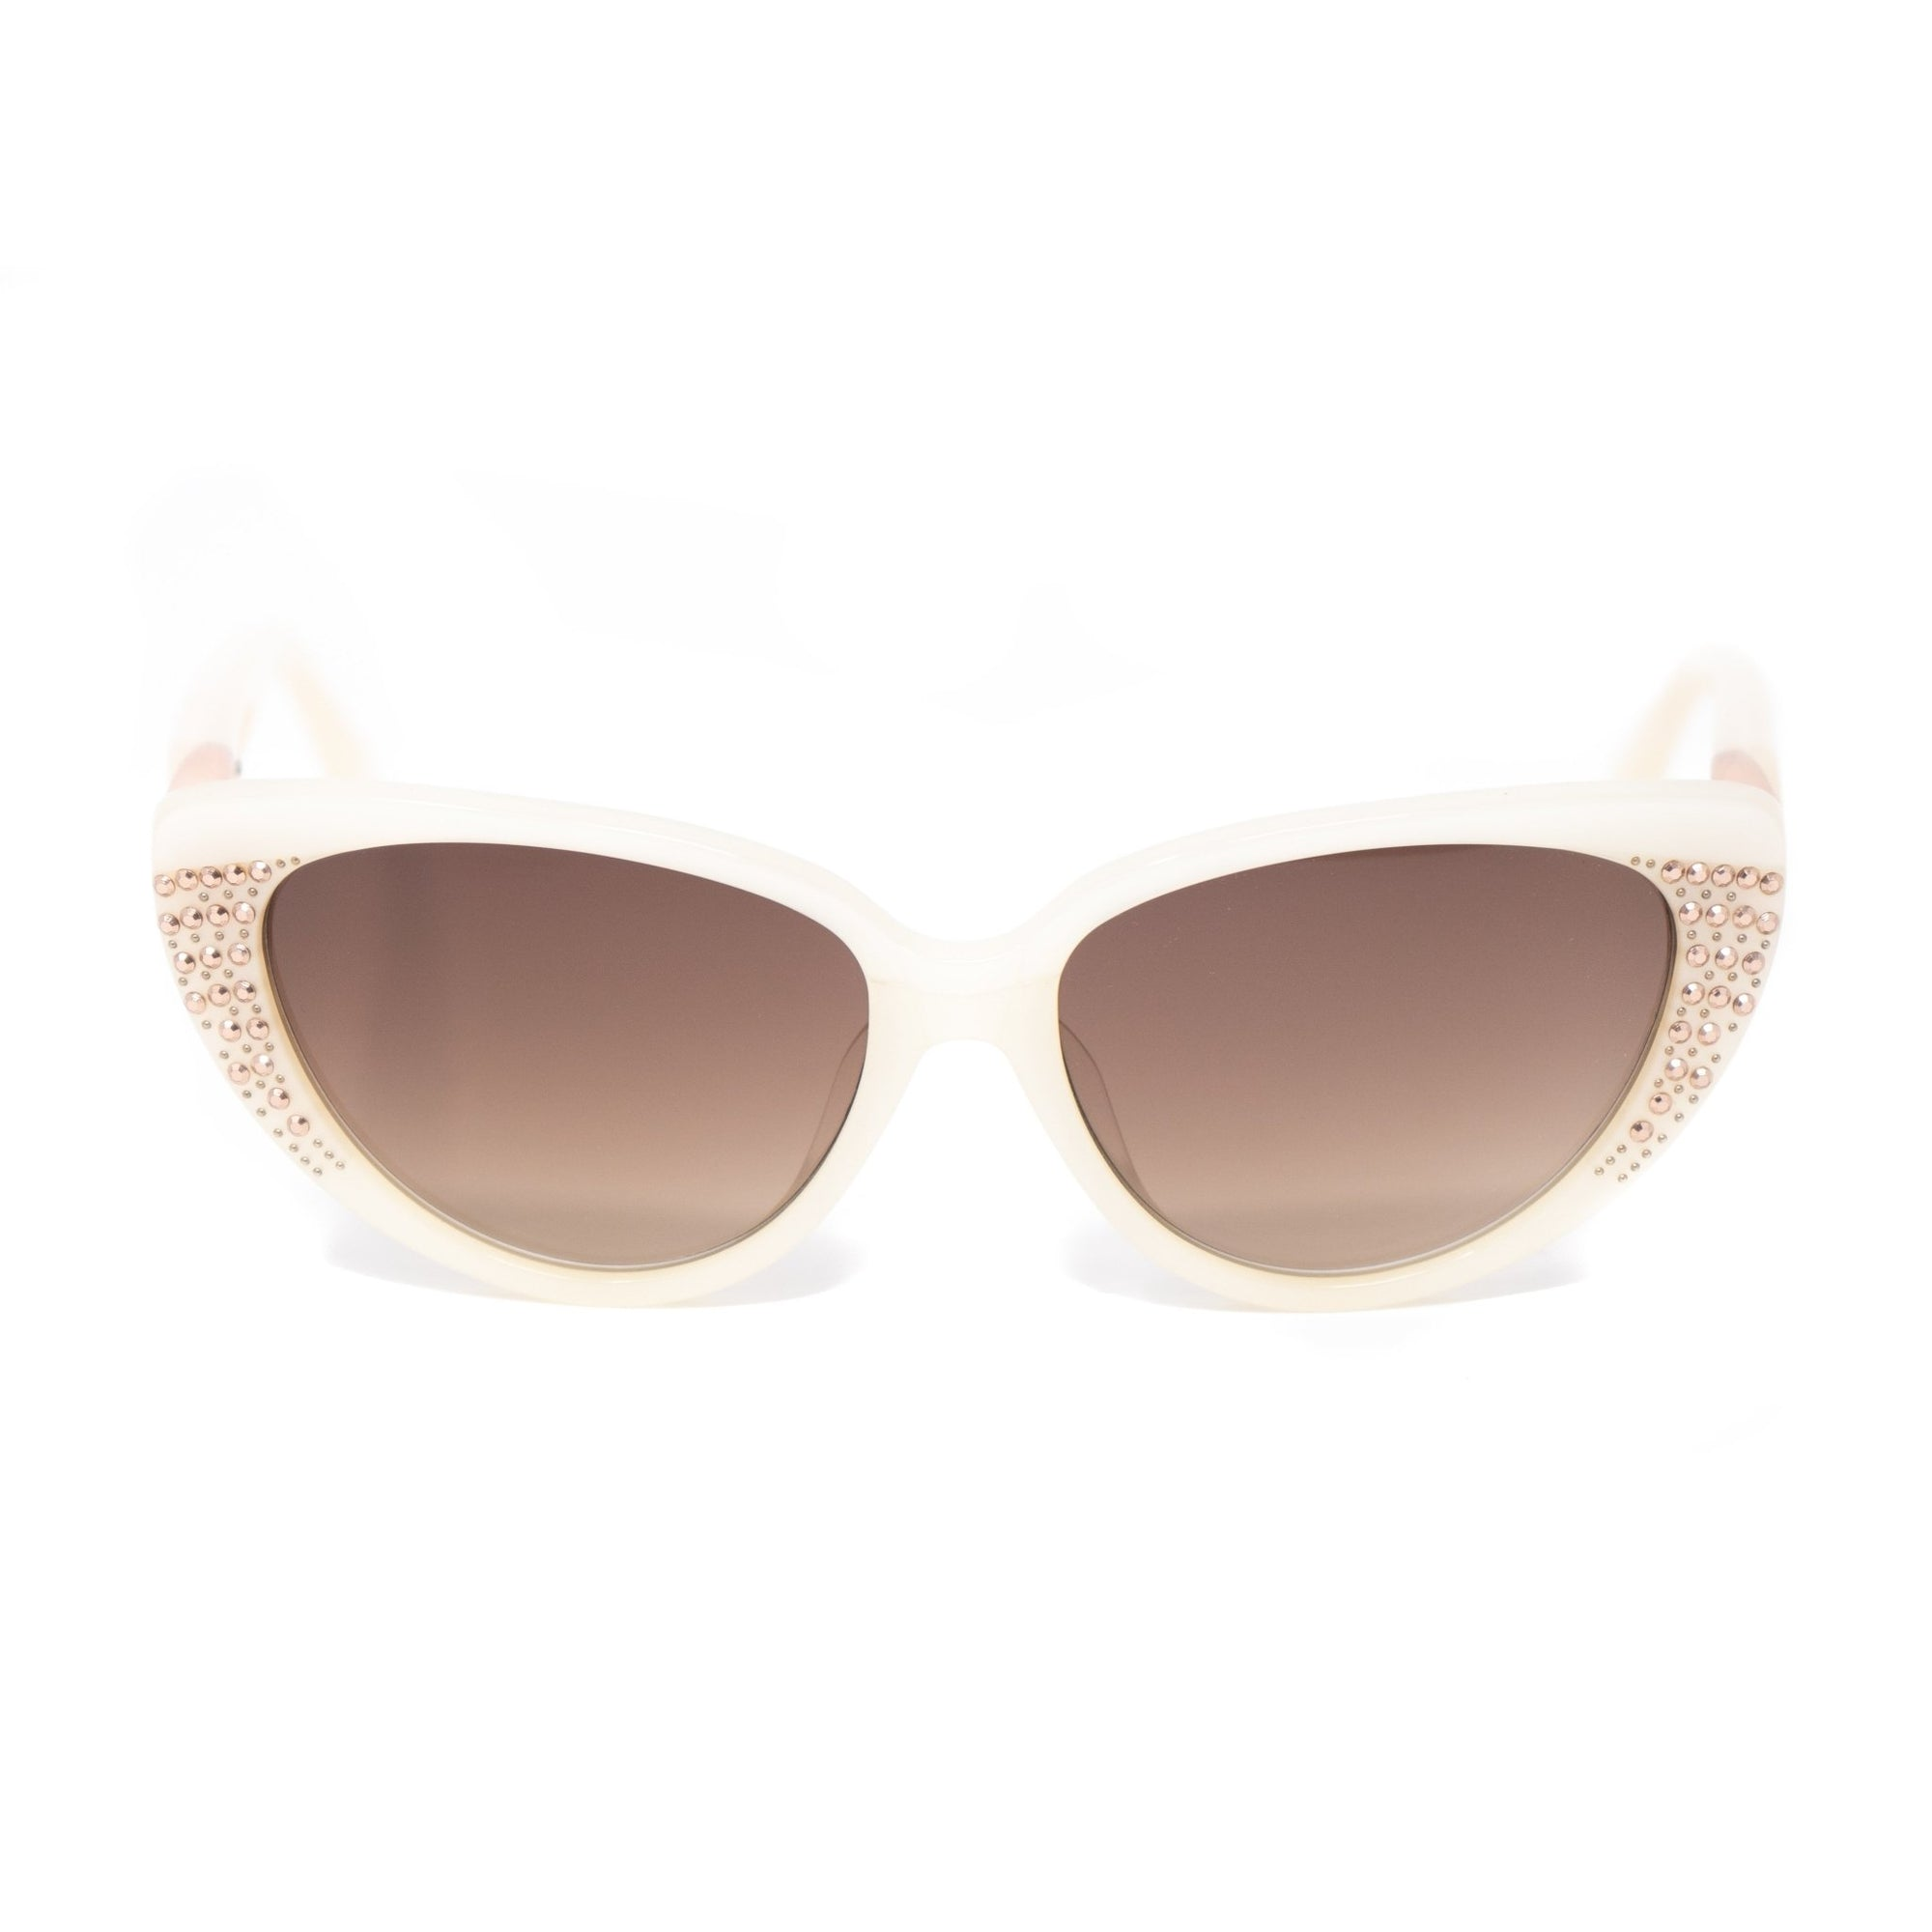 Agent Provocateur Women Sunglasses Cat Eye Beige and Brown Lenses - AP19C8SUN - Watches & Crystals